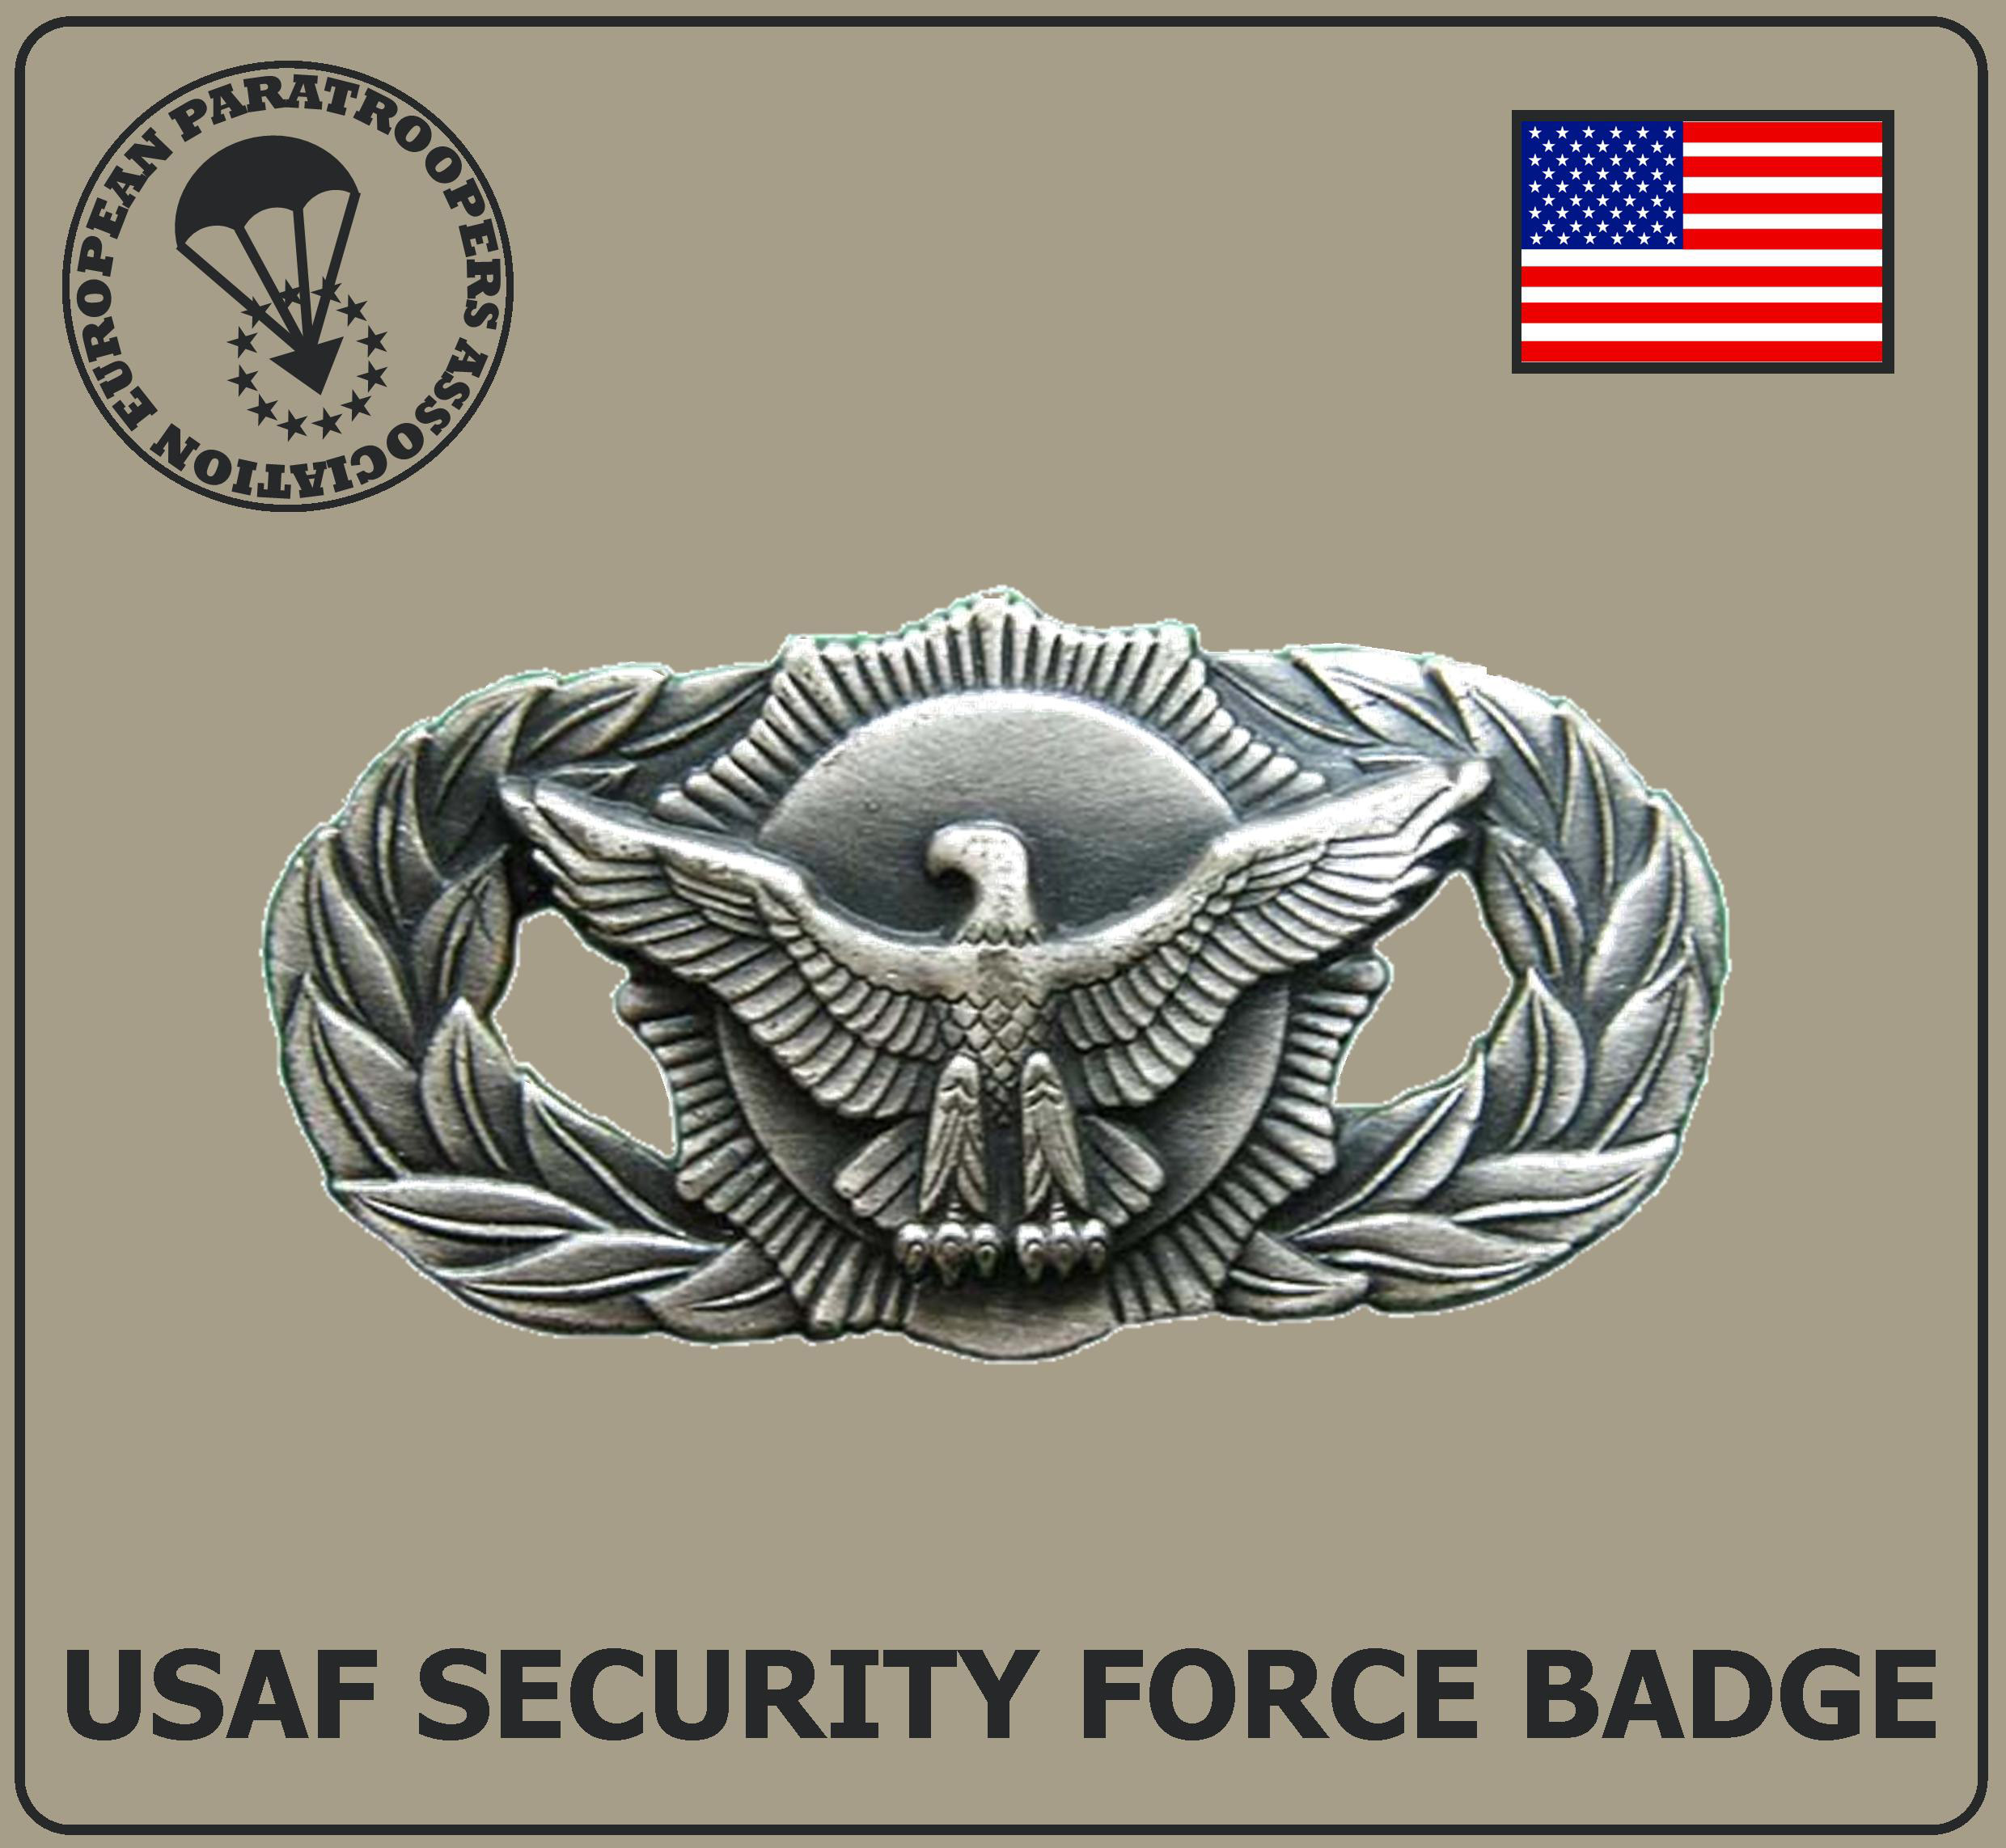 USAF SECURITY FORCE BADGE